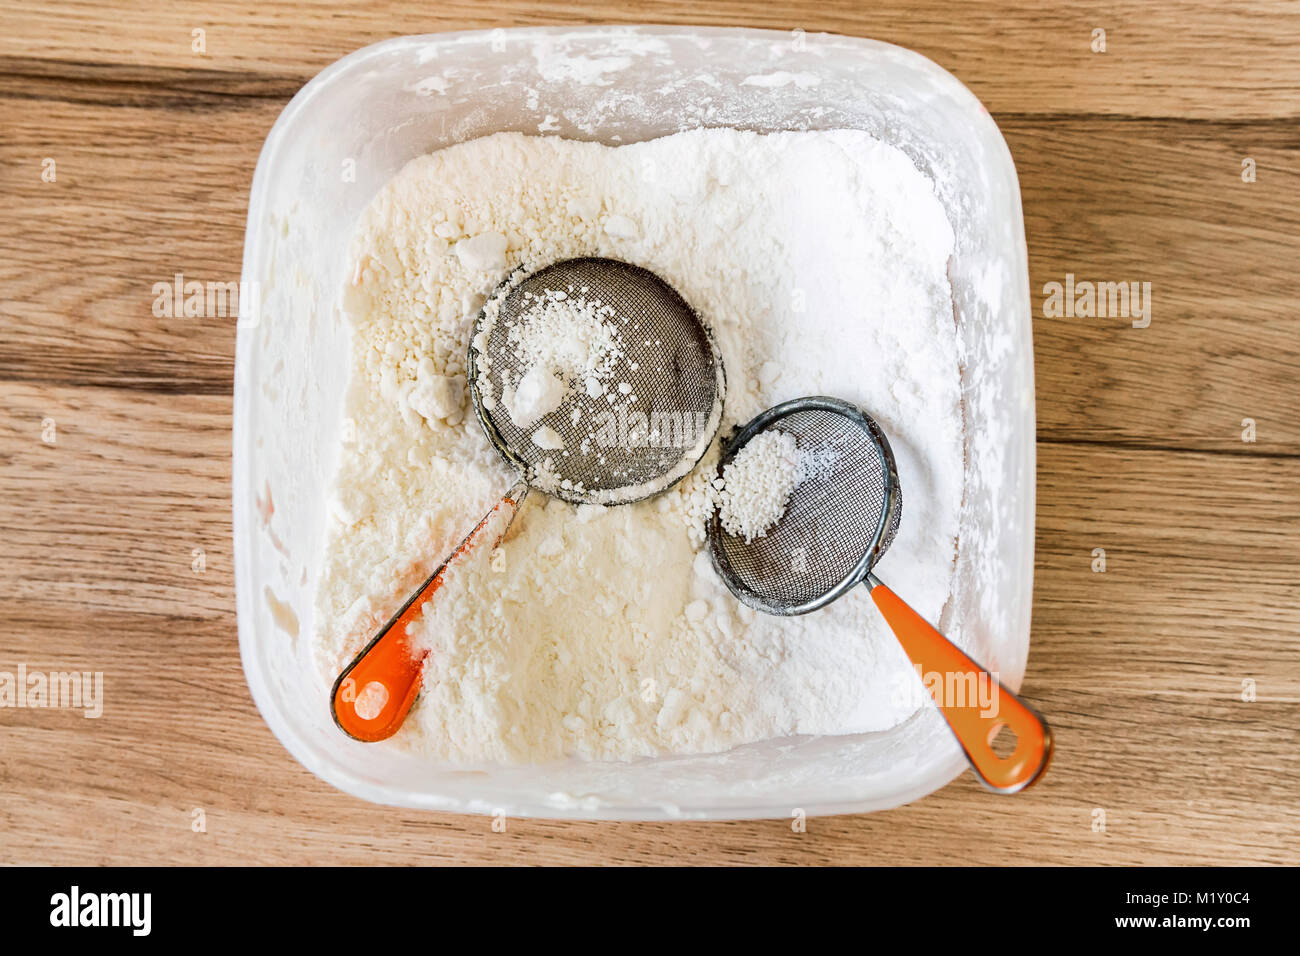 Sugar powder and two sifters in container - Stock Image